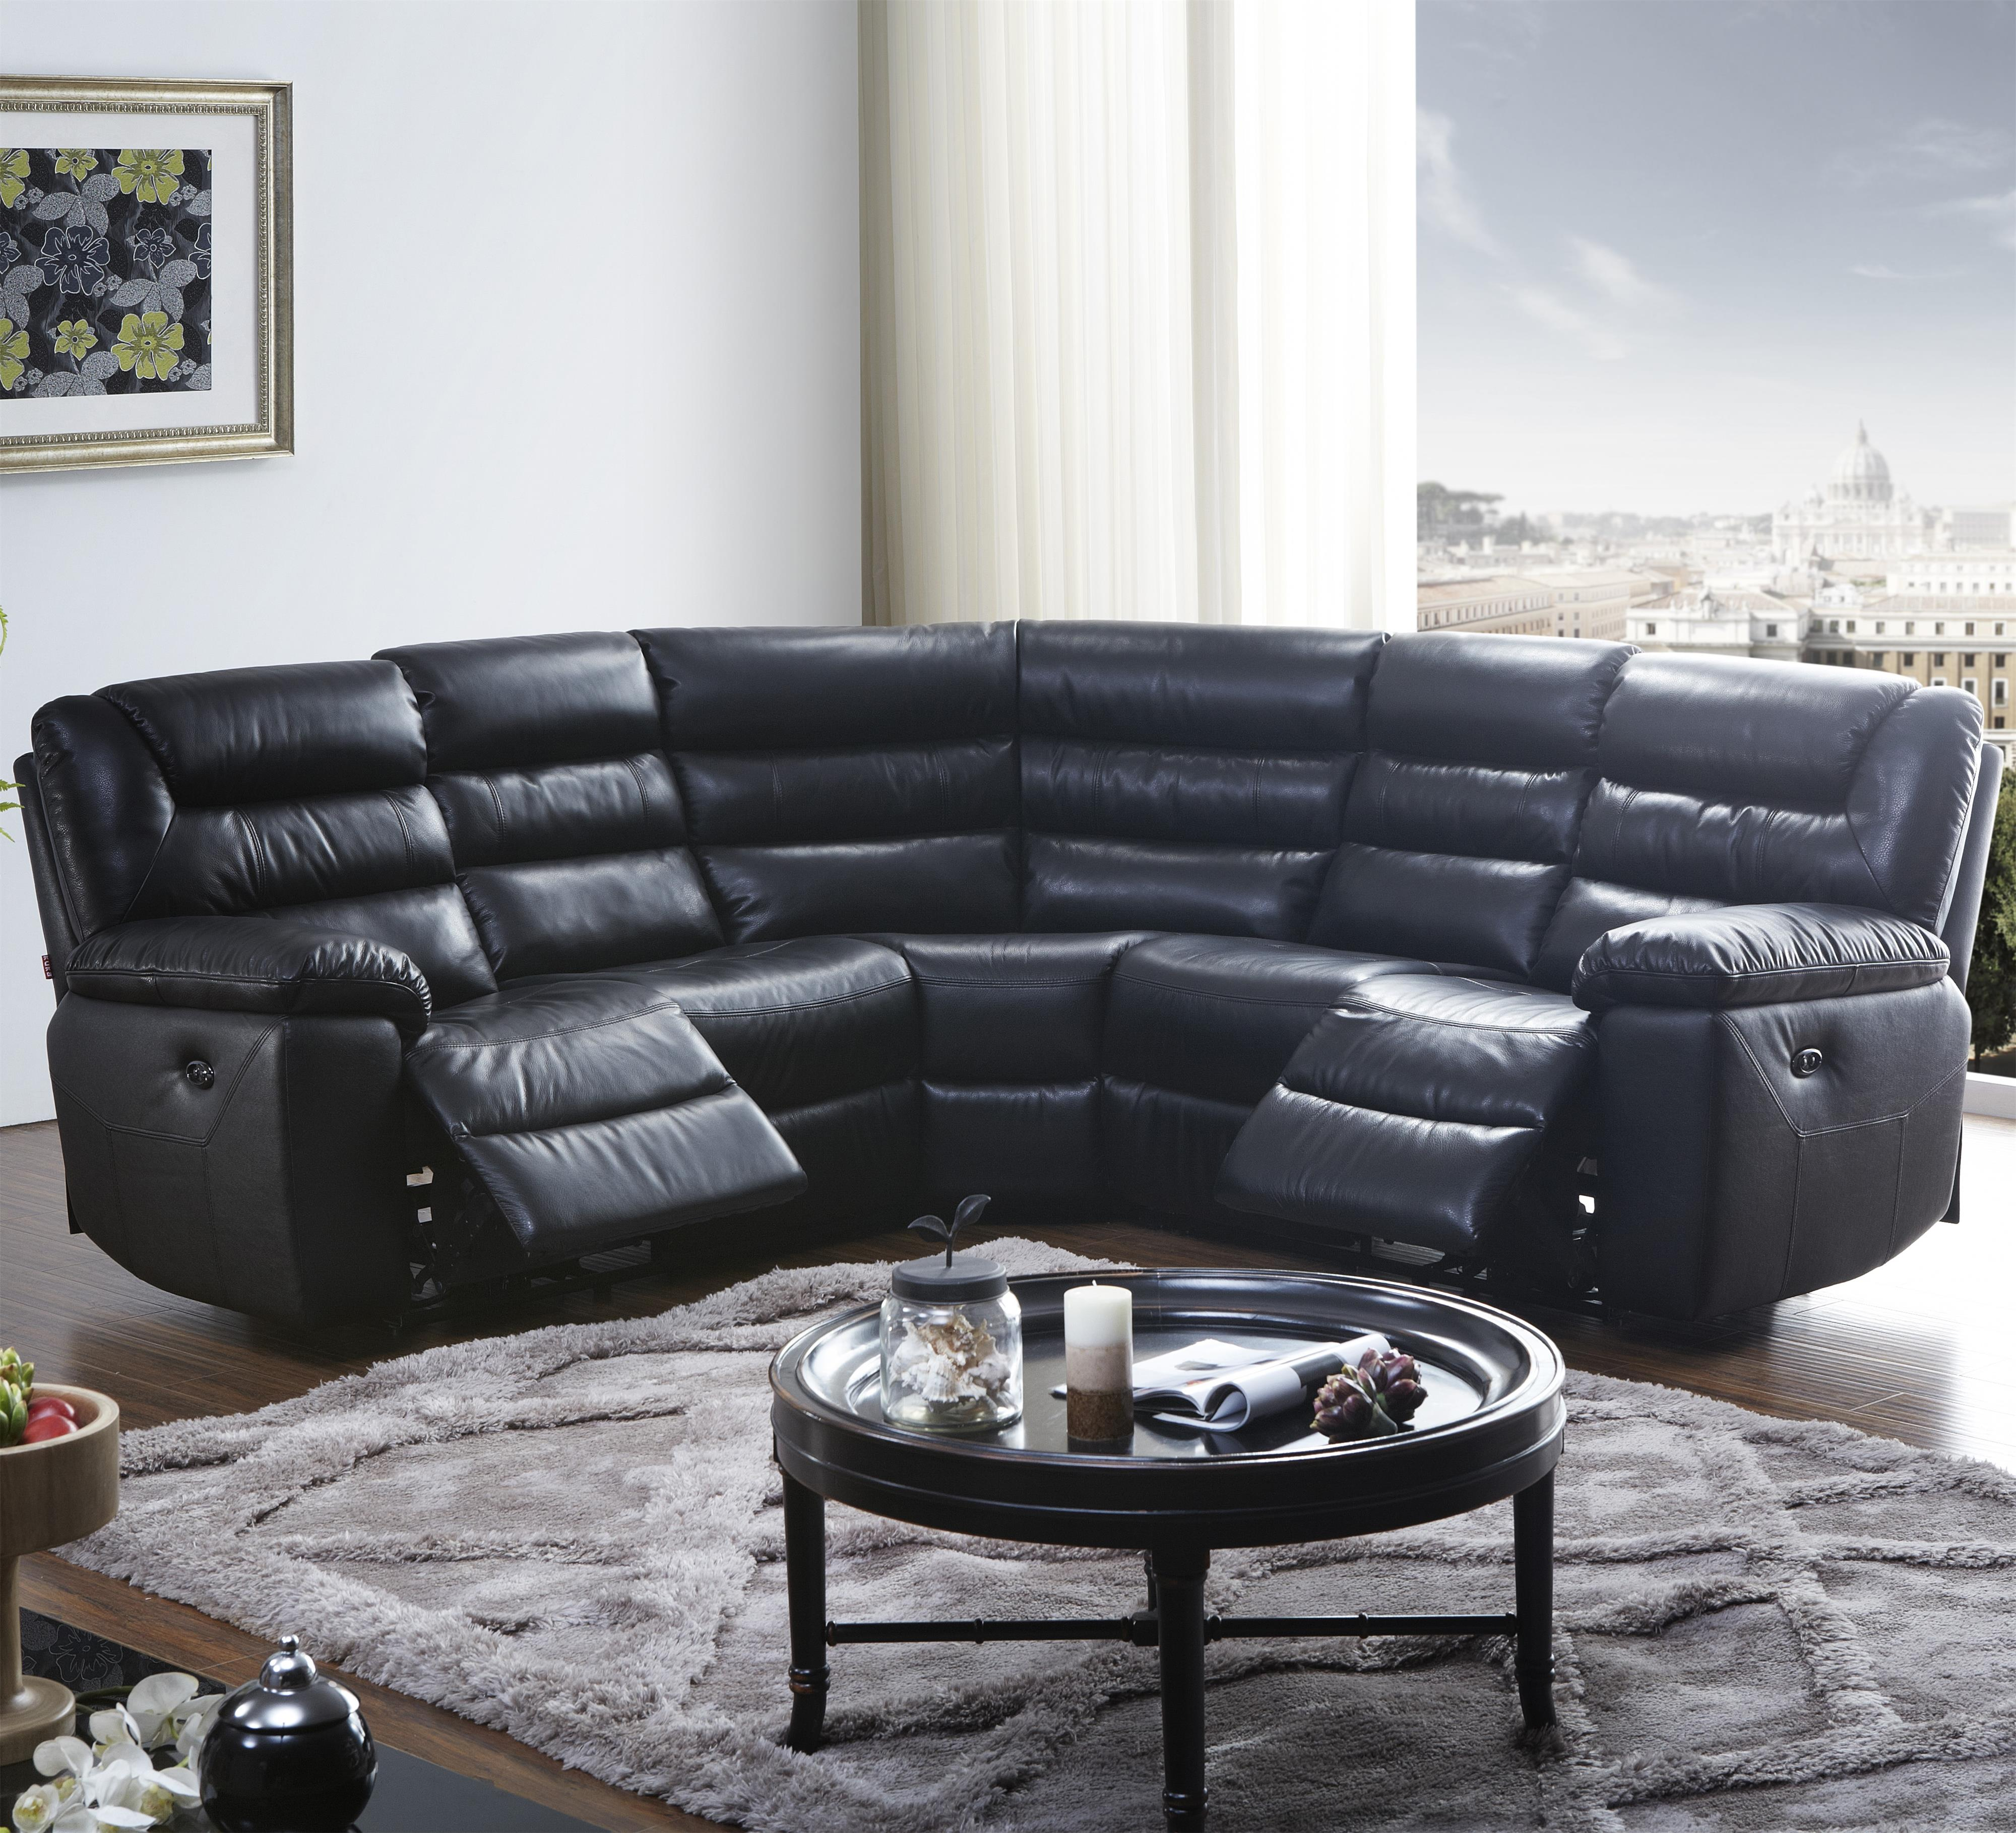 1711 5 Pc Reclining Sectional Sofa at Becker Furniture